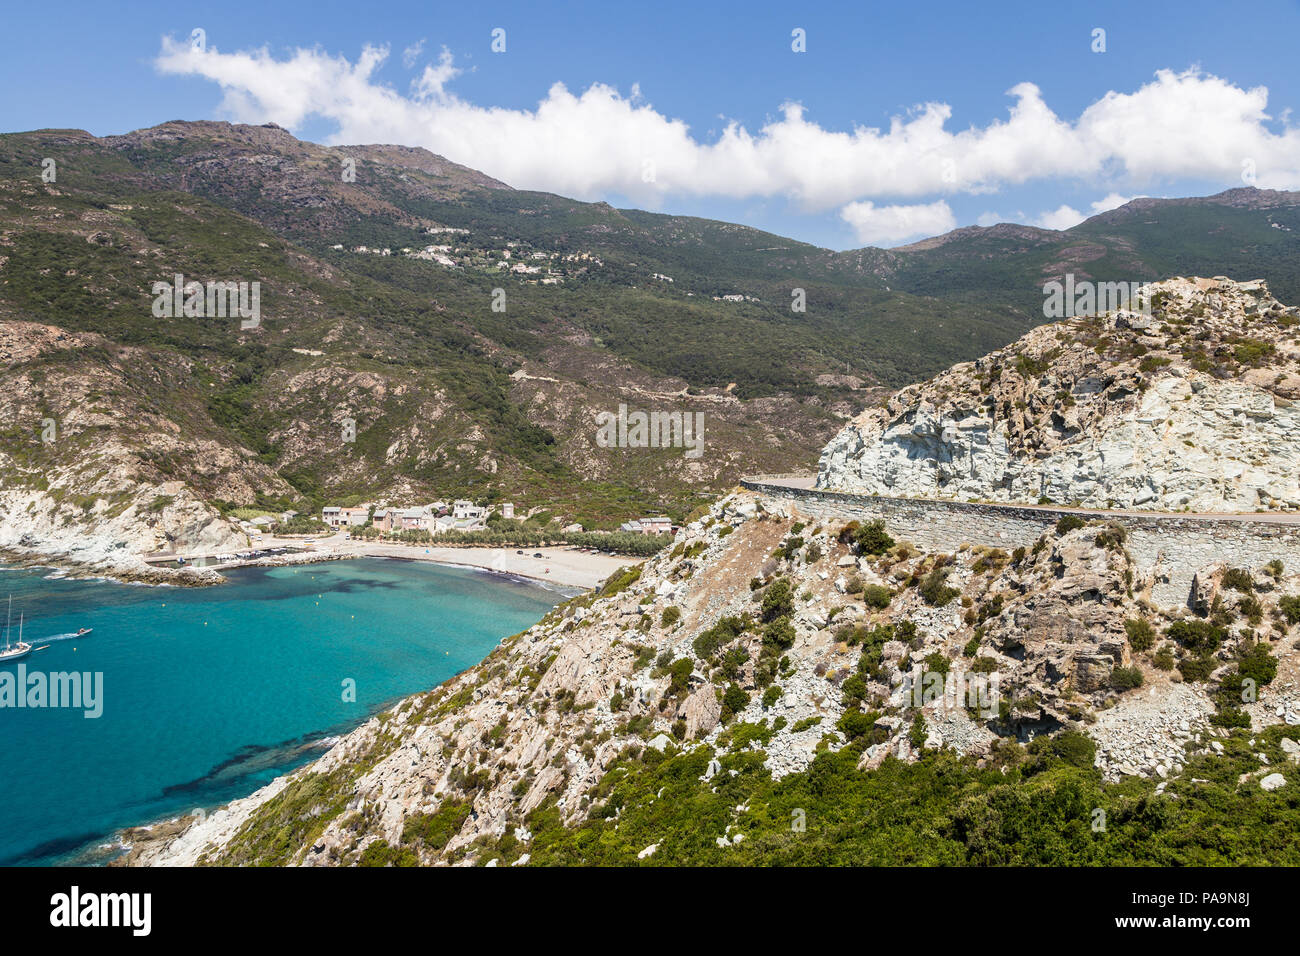 Stunning coastal road by a beautiful bay with turquoise water in Corsica in France near the Ile Rousse village. - Stock Image